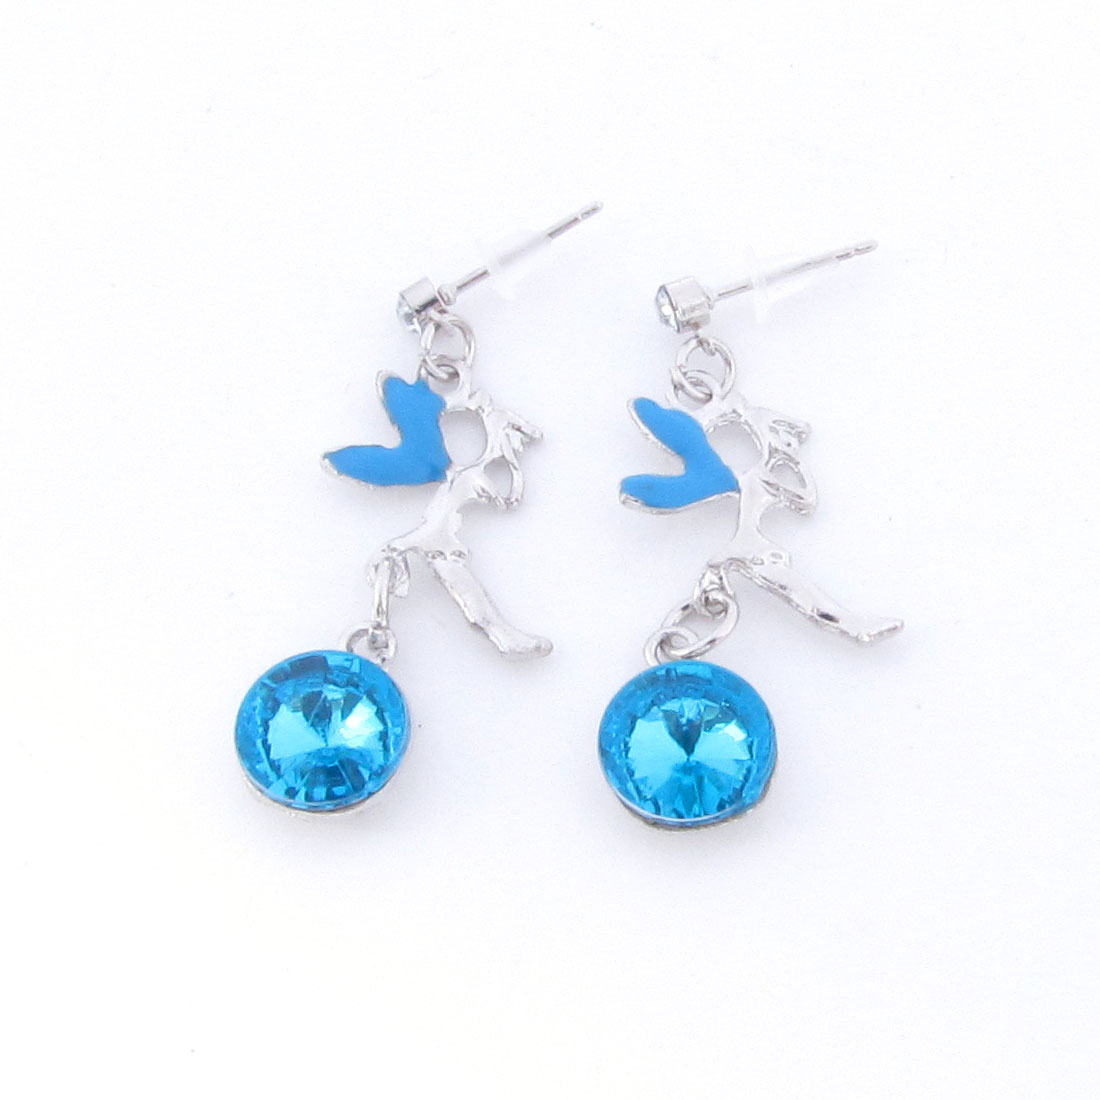 Girls Ear Ornament Silver Tone Blue Angel Shape Pendant Stud Earrings Pair